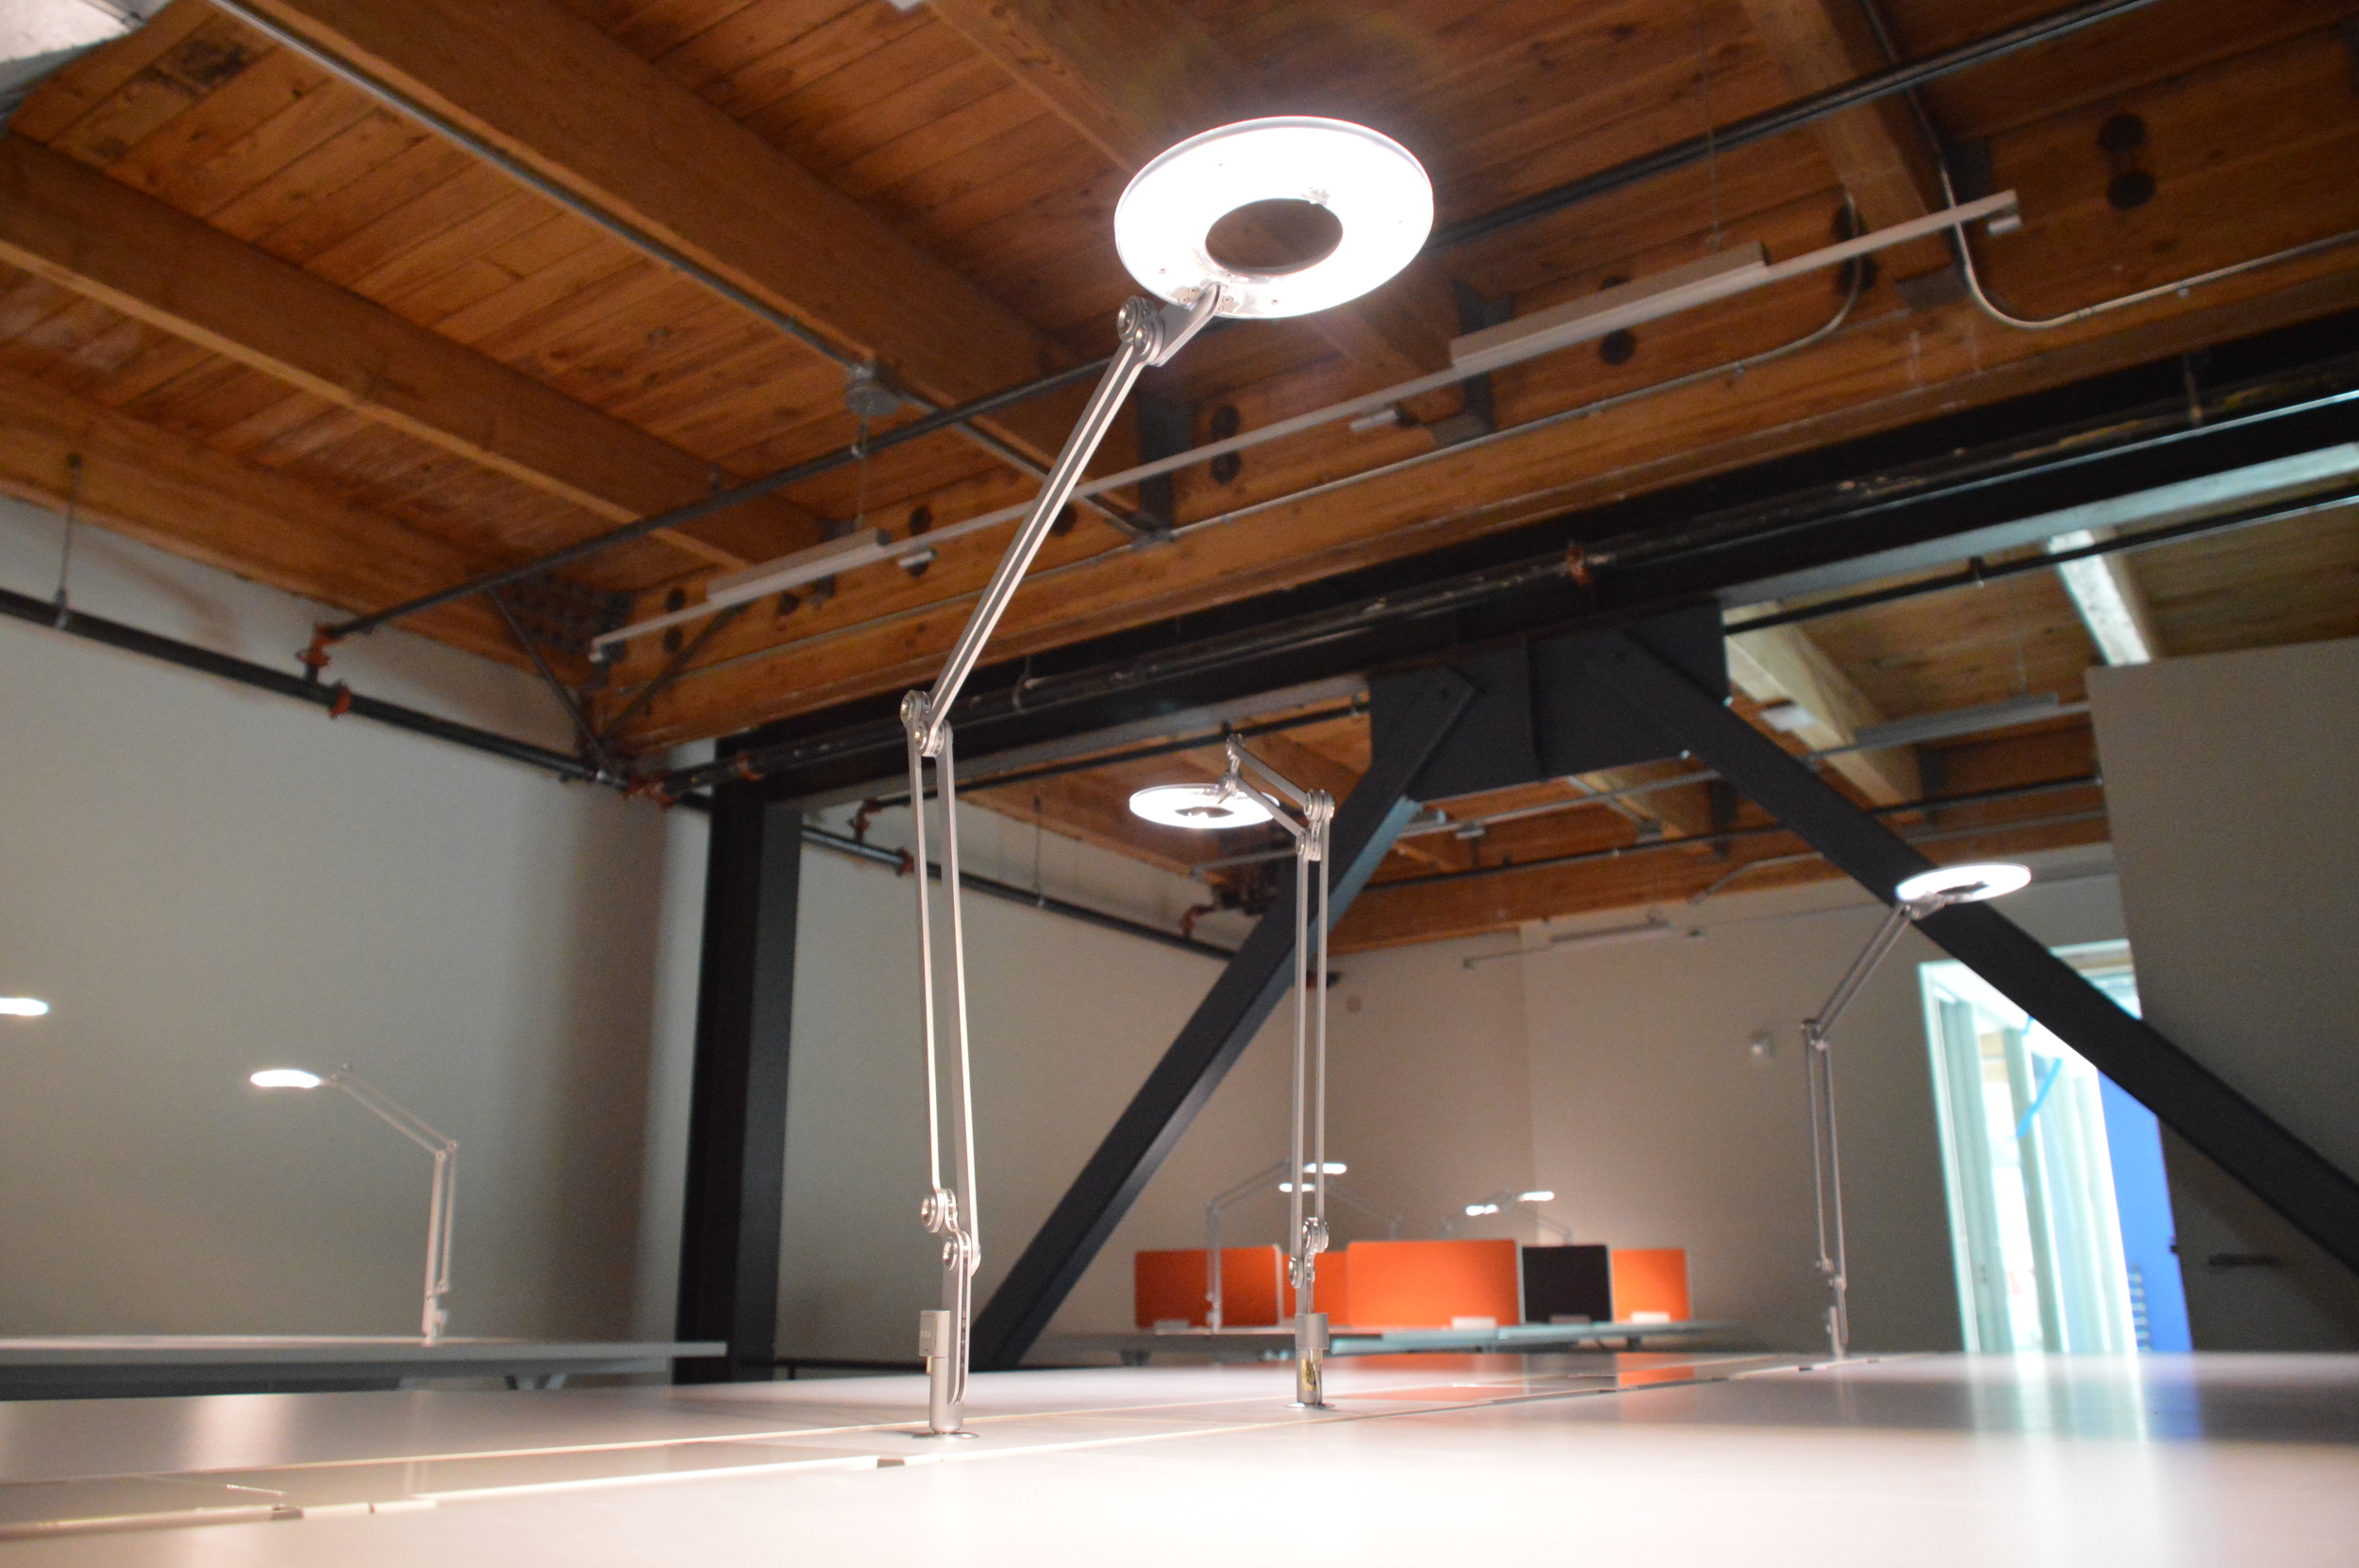 Galvanize San Francisco Installation lamp designed by scale 1-1